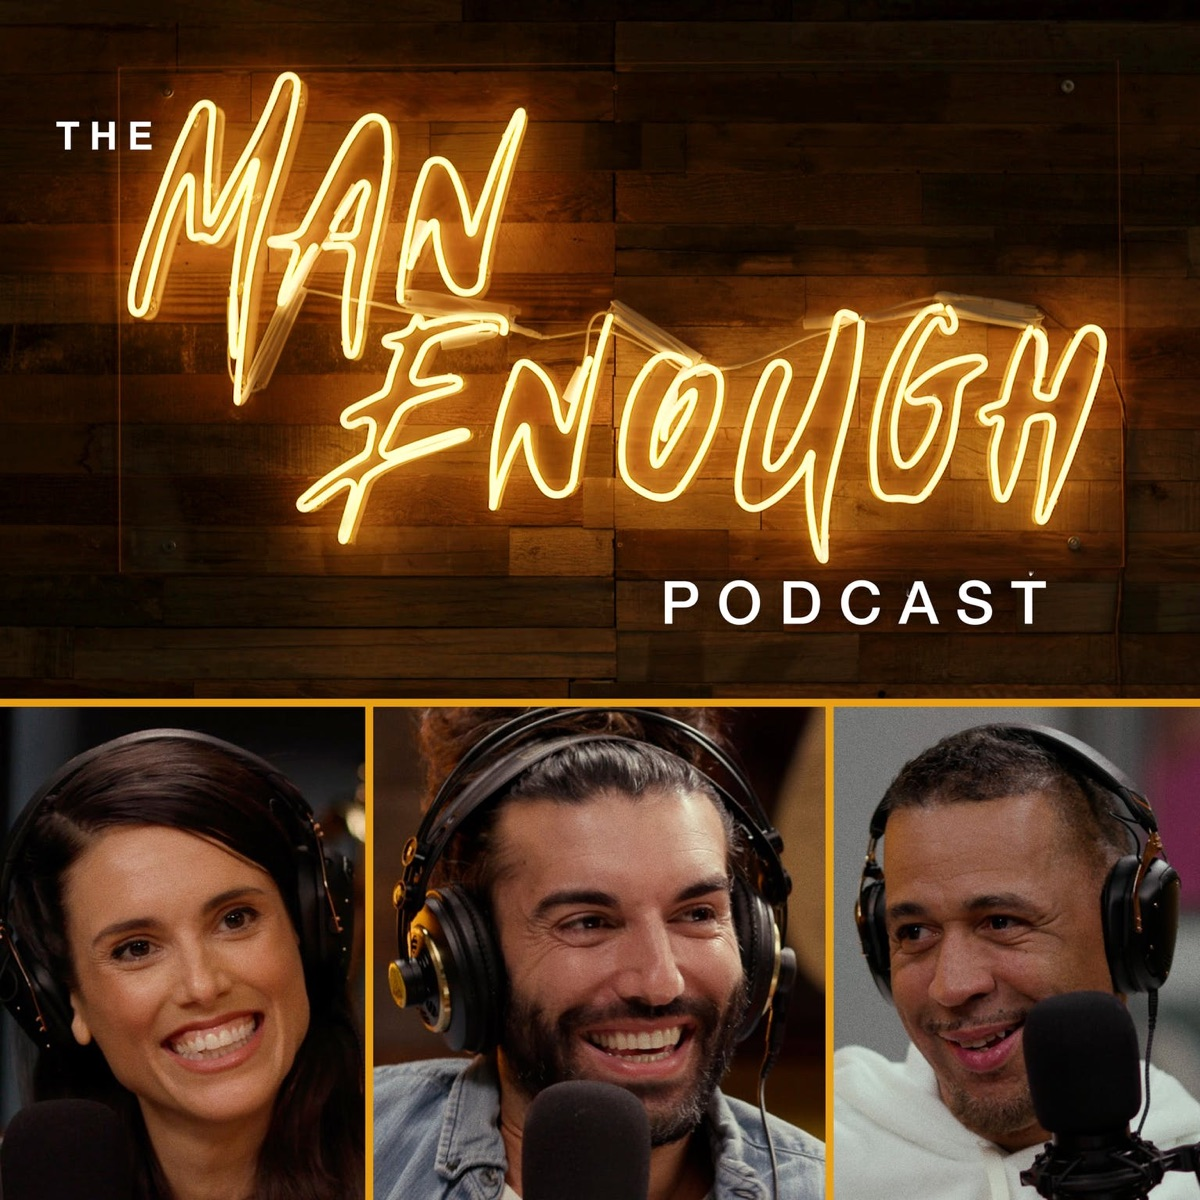 The Man Enough Podcast